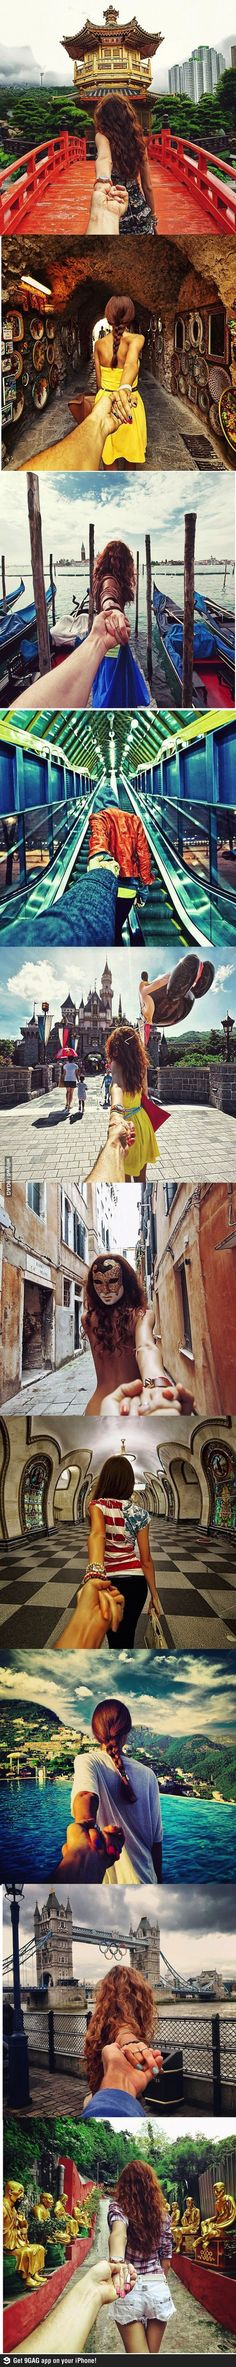 Photographer's girlfriend leads him around the world.....cute idea for traveling